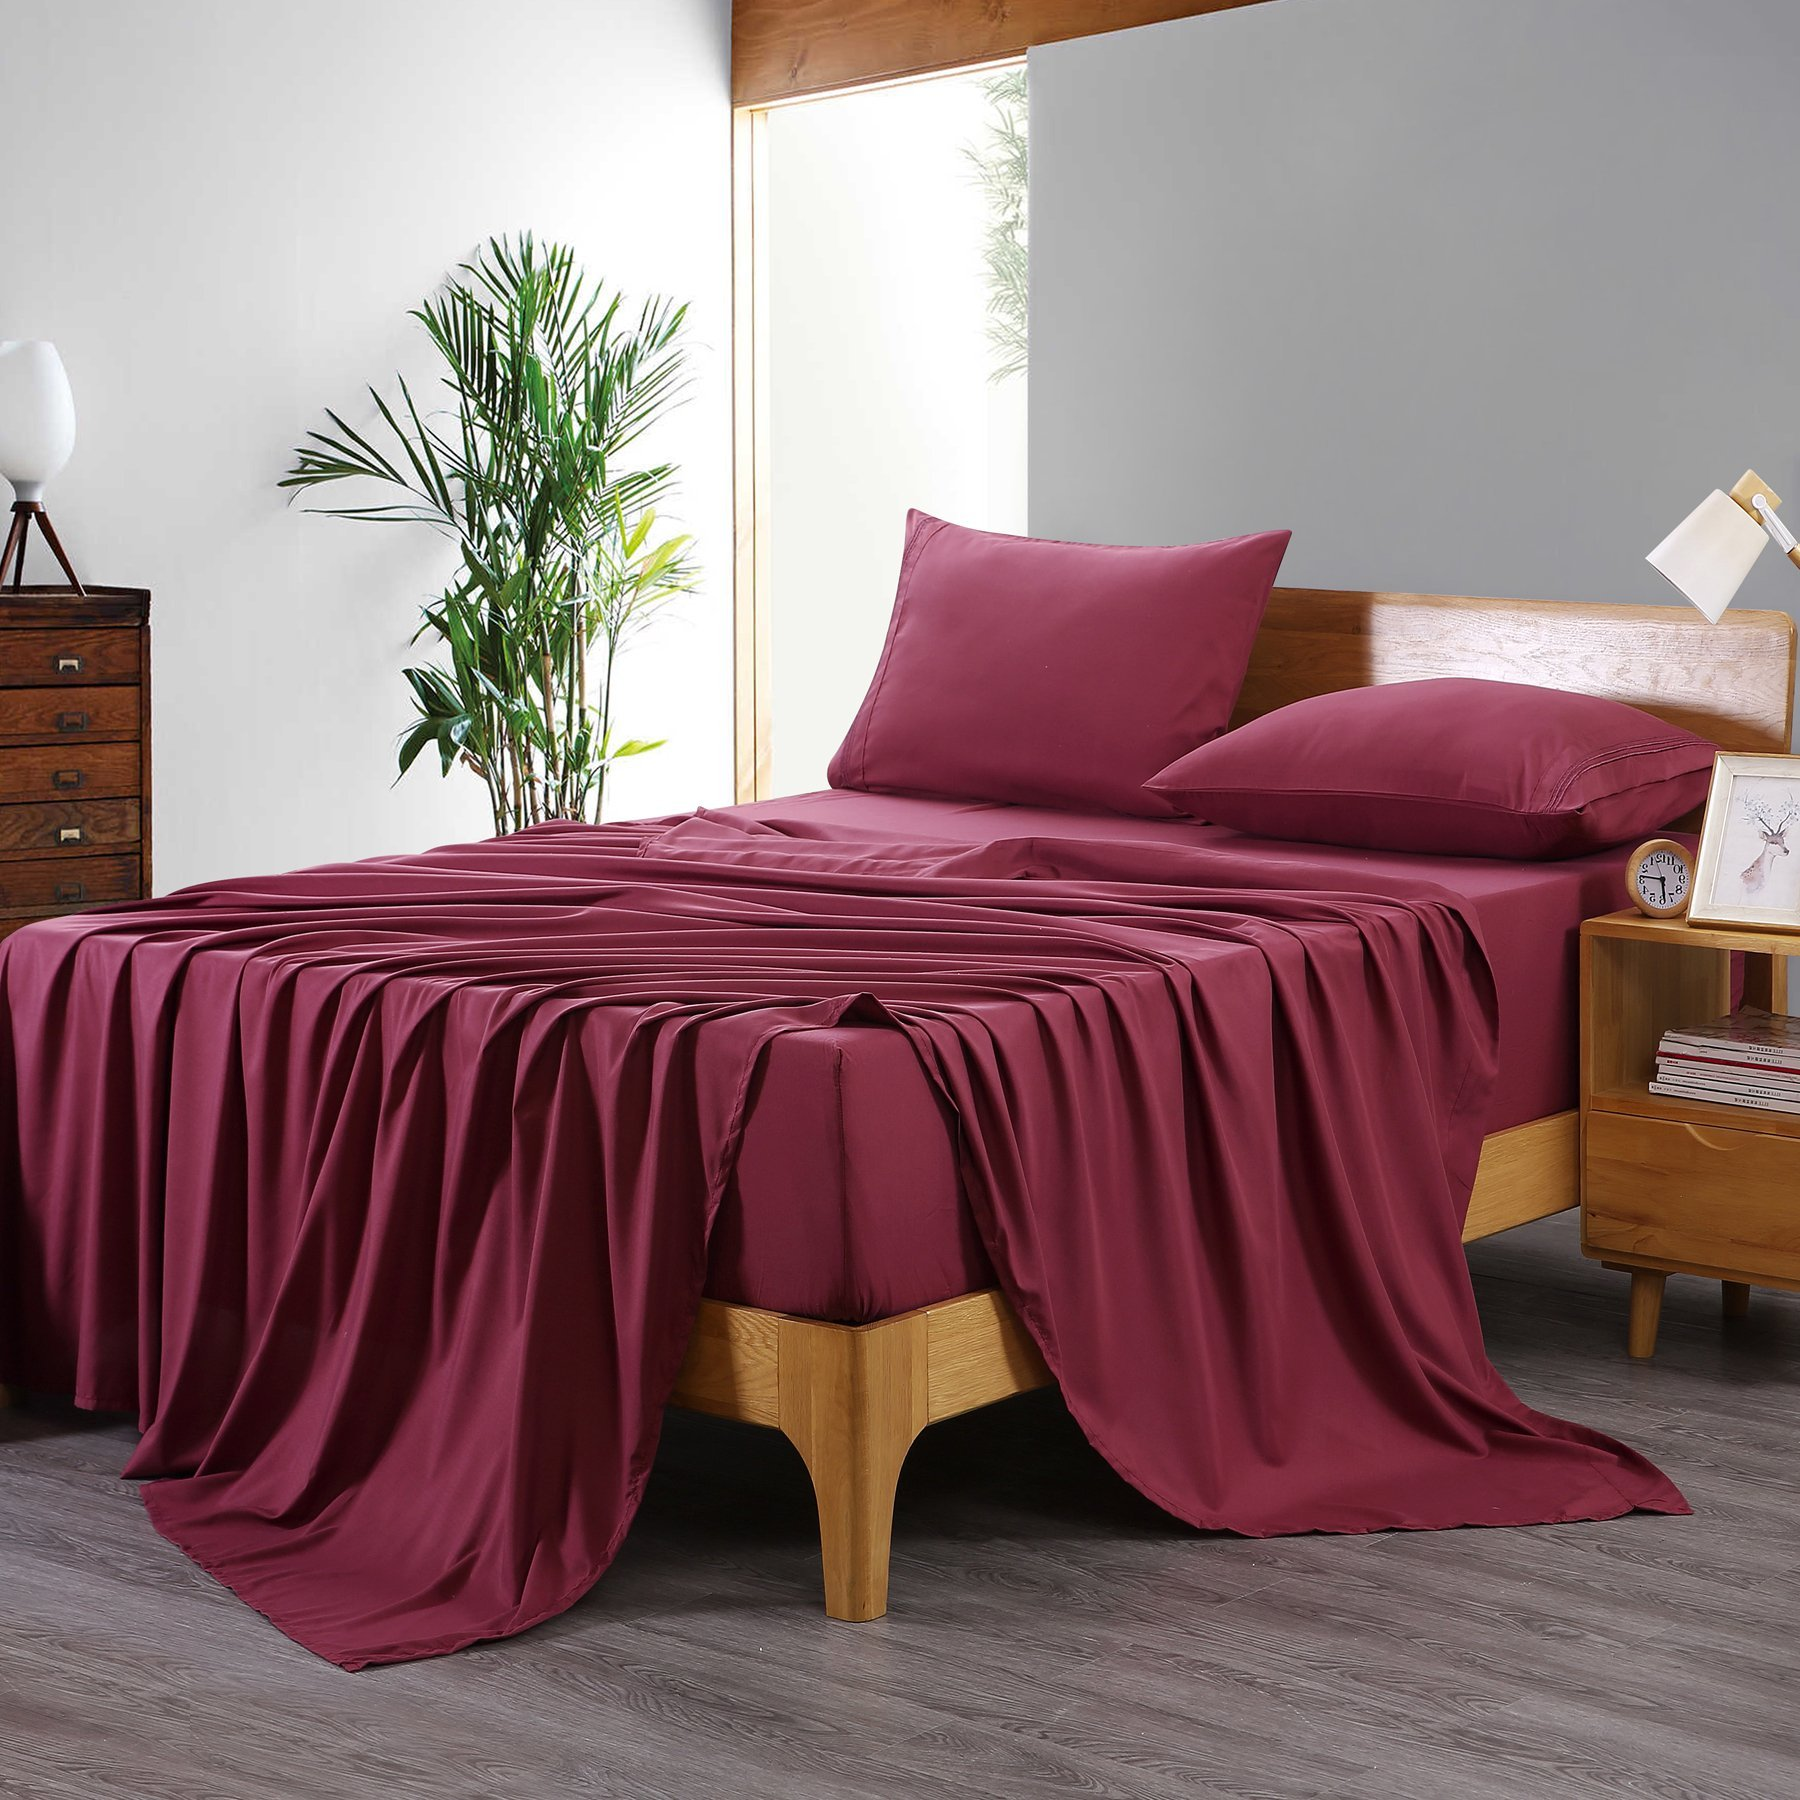 DUO-V HOME King 4 Piece Bed Sheet Set Hotel Luxury Bed Sheets Extra Soft Breathable Cooling Wrinkle Free(Redwine